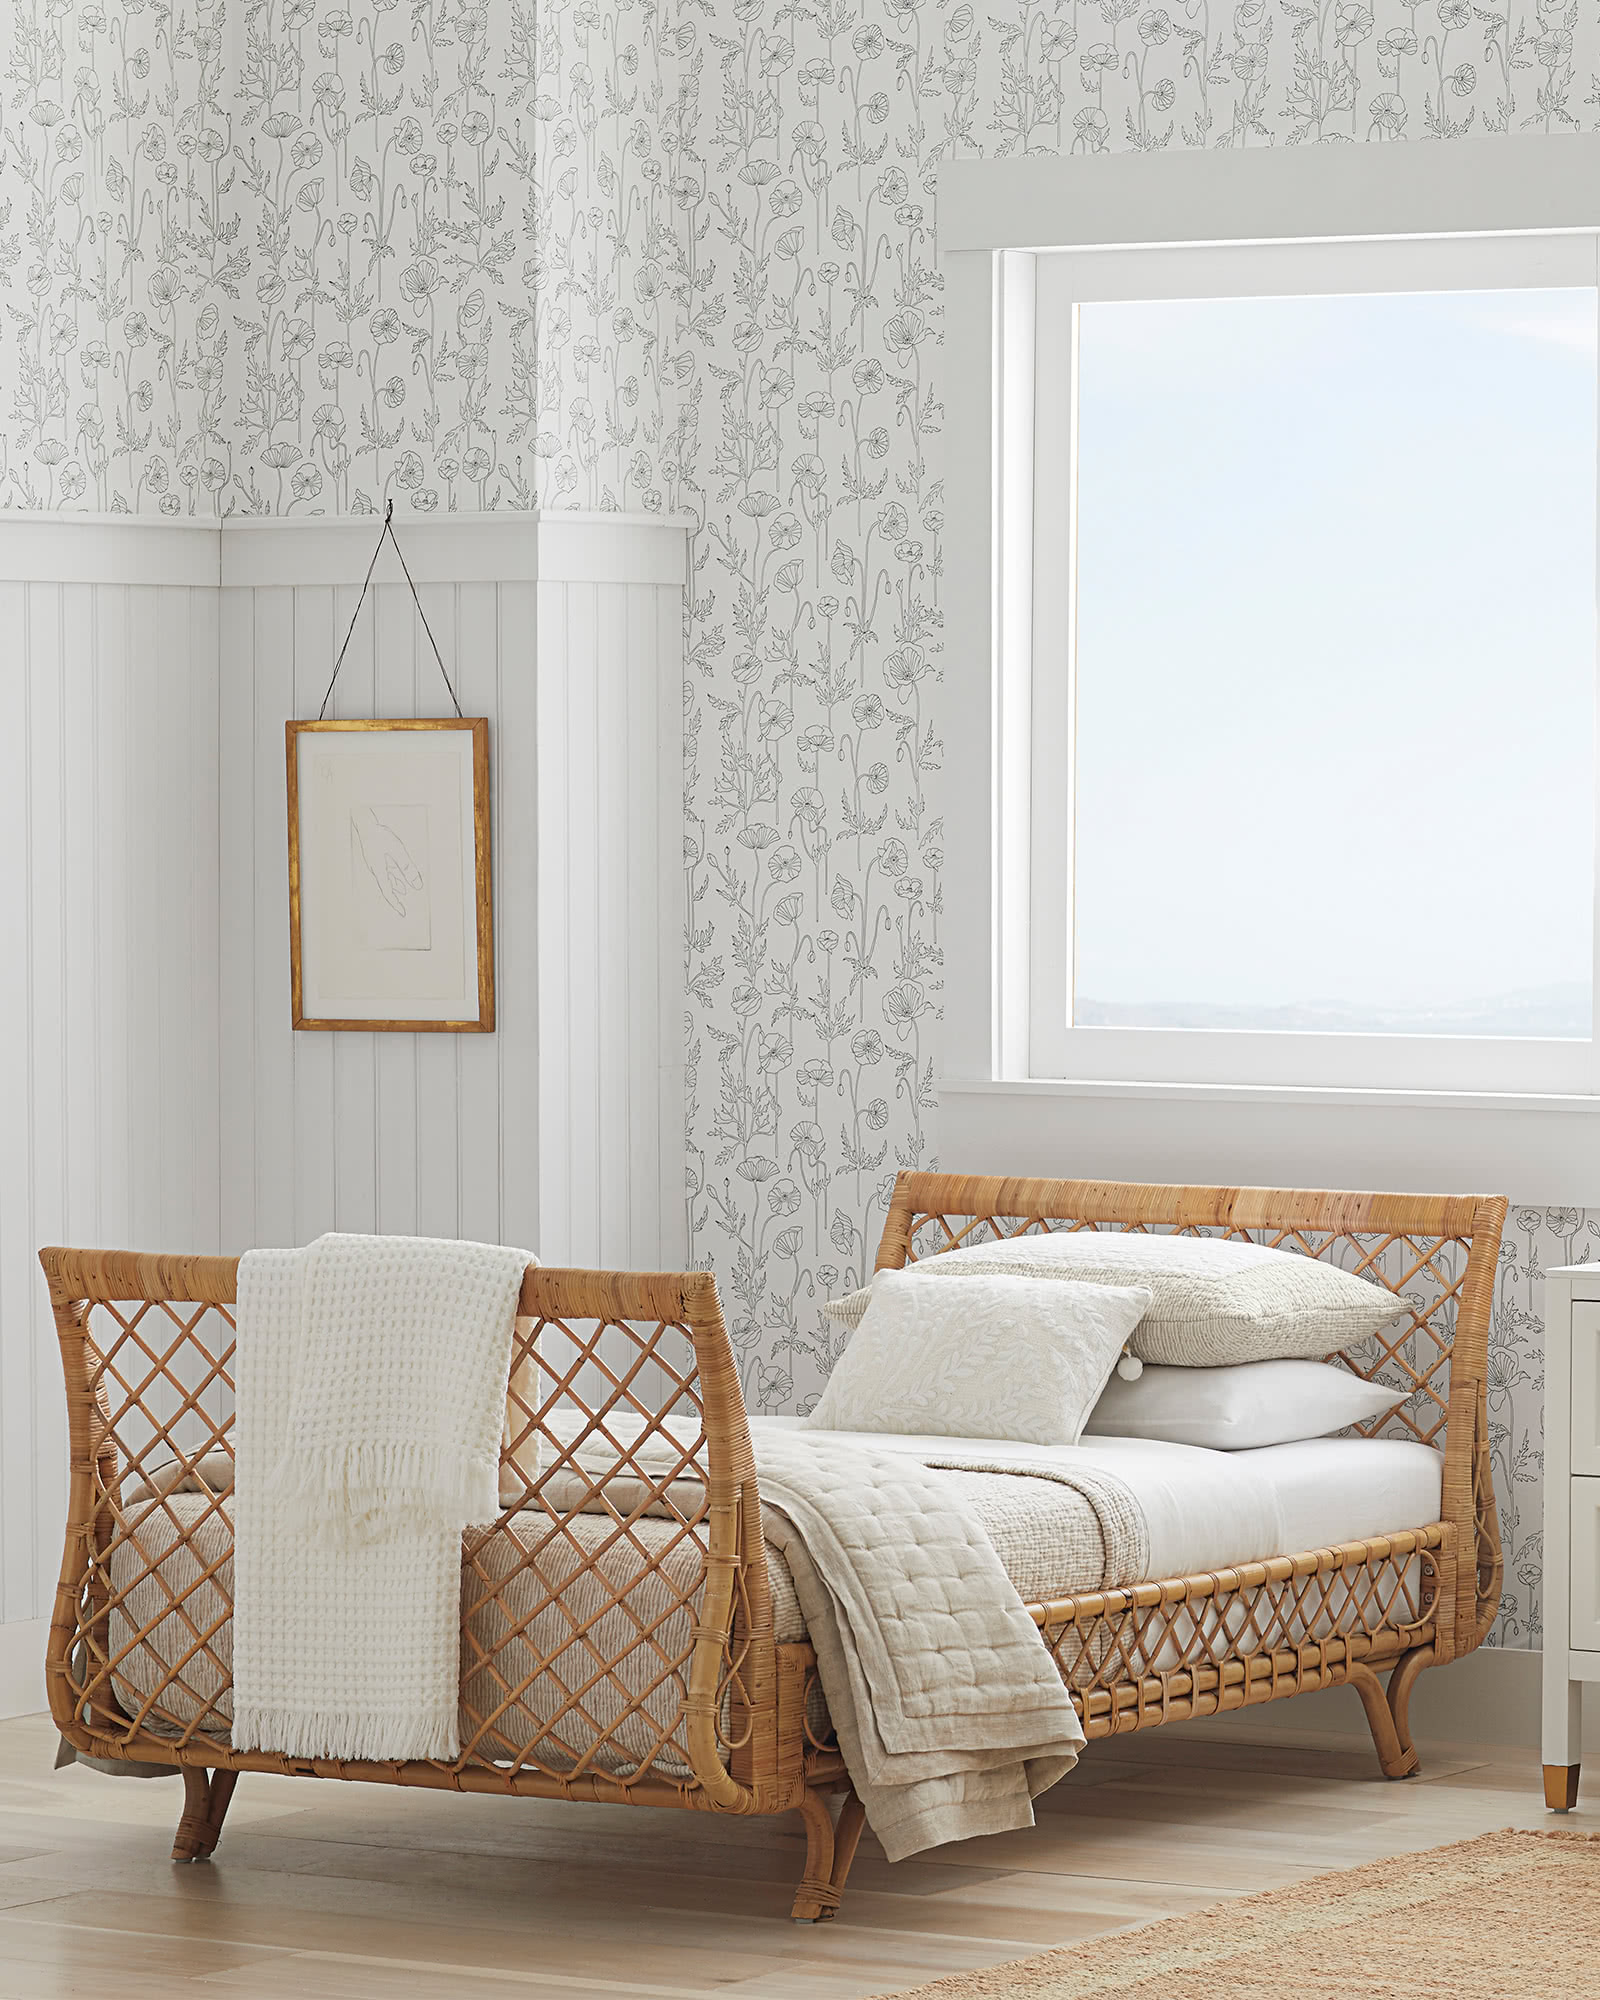 Rattan daybed from Serena & Lily